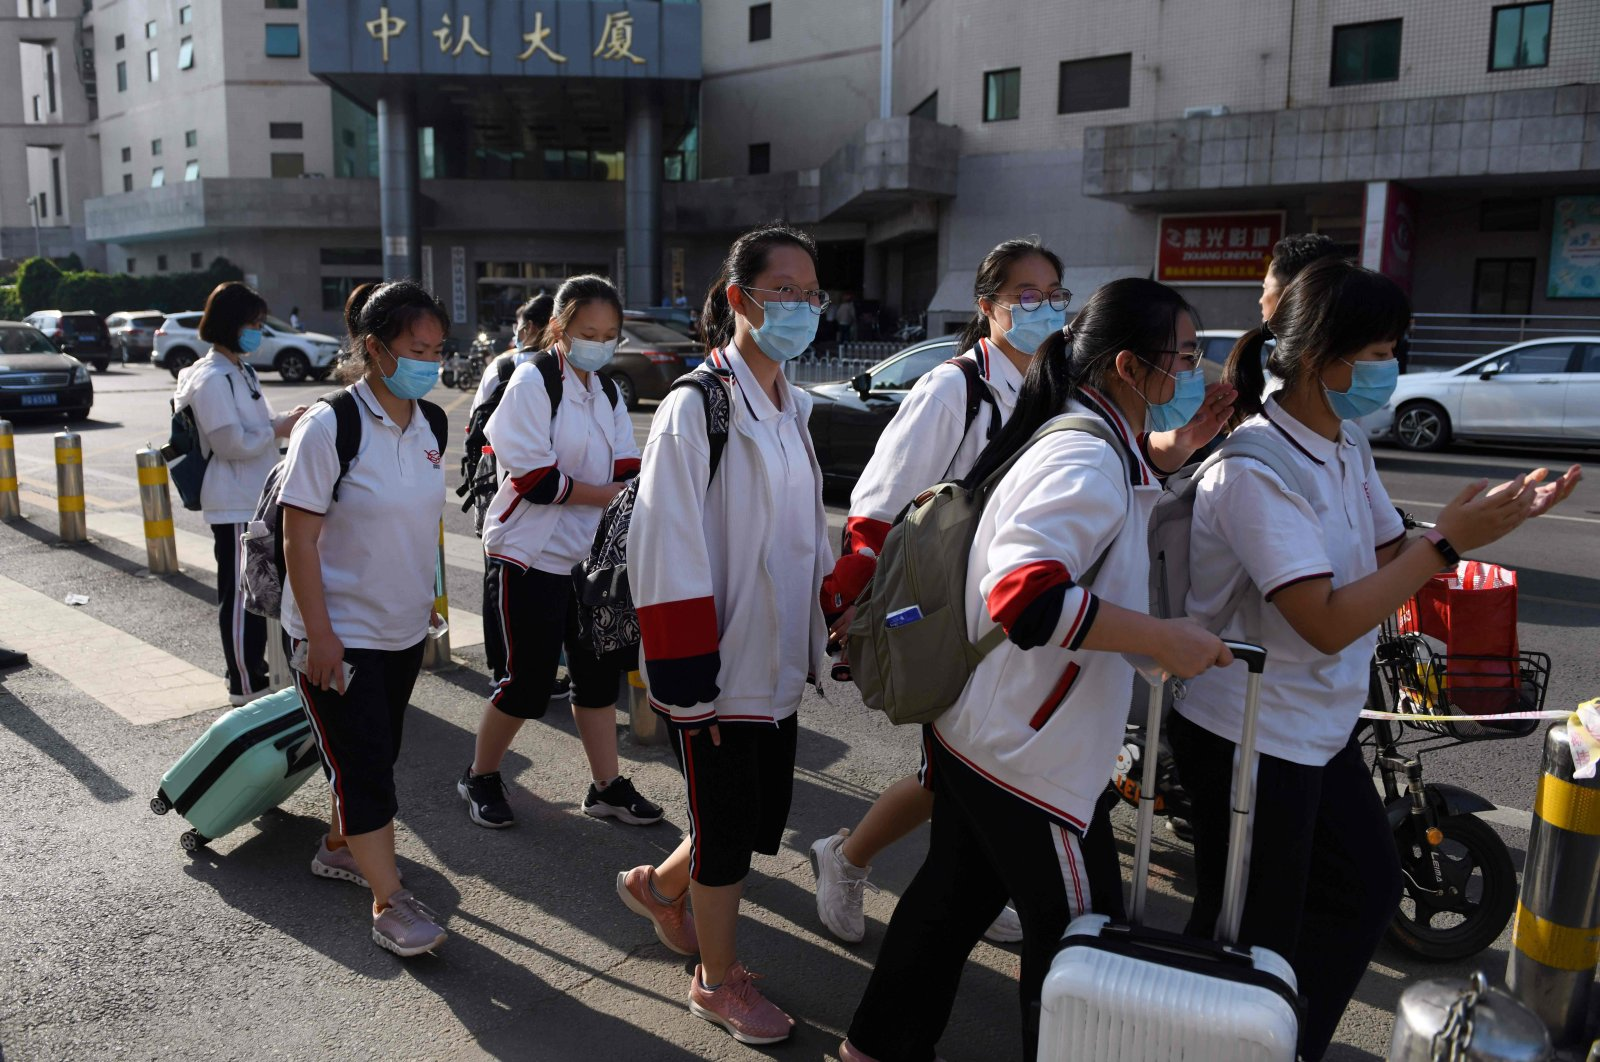 High school students leave at the end of their school day in Beijing, June 12, 2020. (AFP Photo)